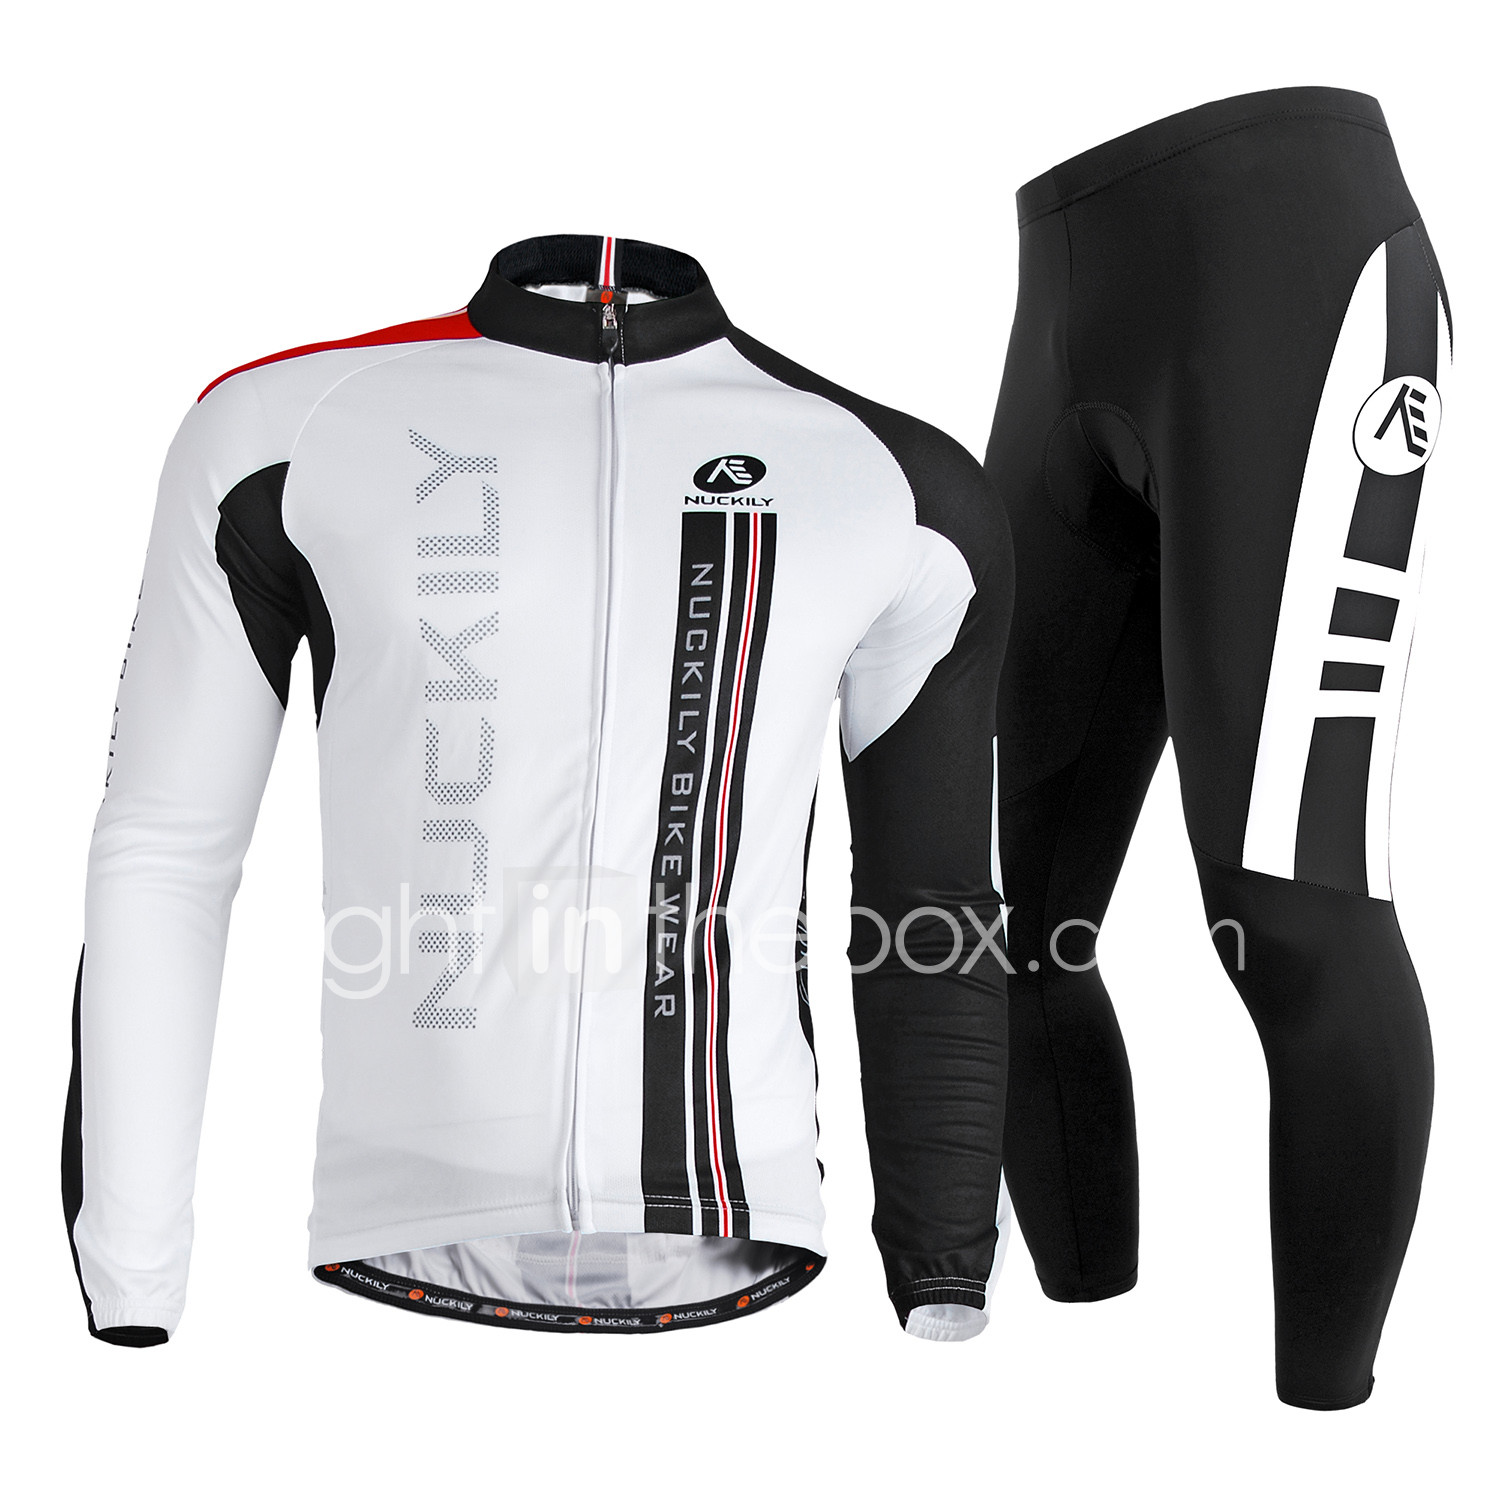 Nuckily Men s Long Sleeve Cycling Jersey with Tights - White Bike Clothing  Suit c70592e35